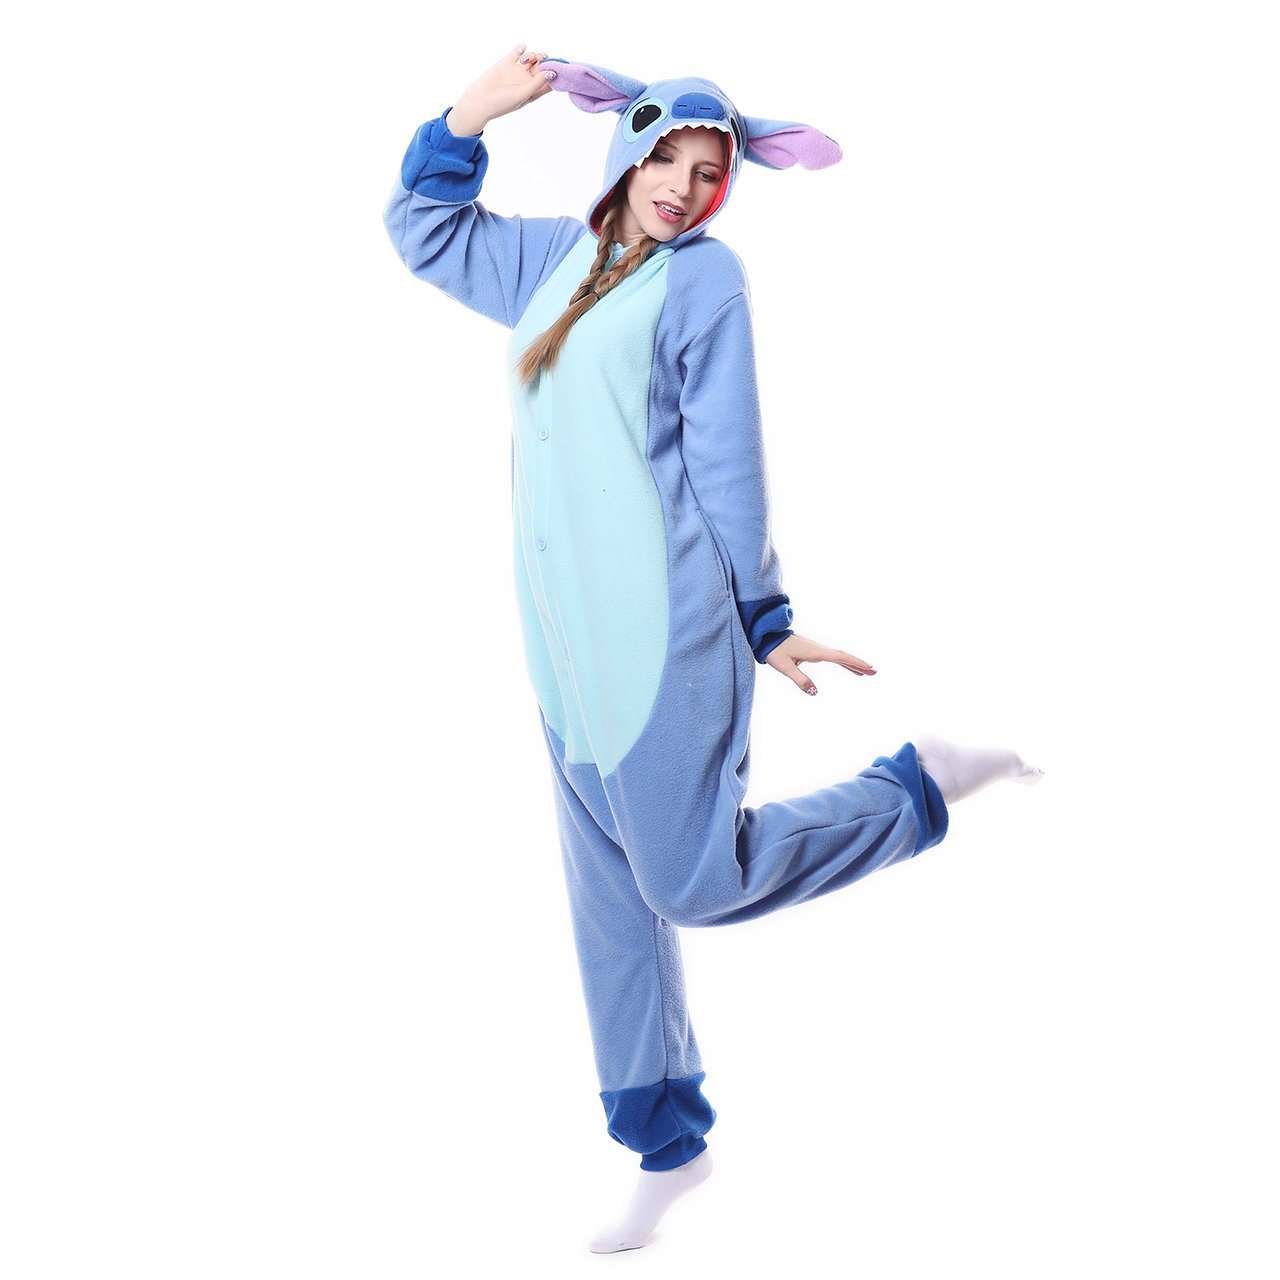 MEILIS Cartoon Sleepsuit Costume Cosplay Lounge Wear Kigurumi Onesie Pajamas Stitch,Birthday or Christmas Gift,Blue by MEILIS (Image #6)